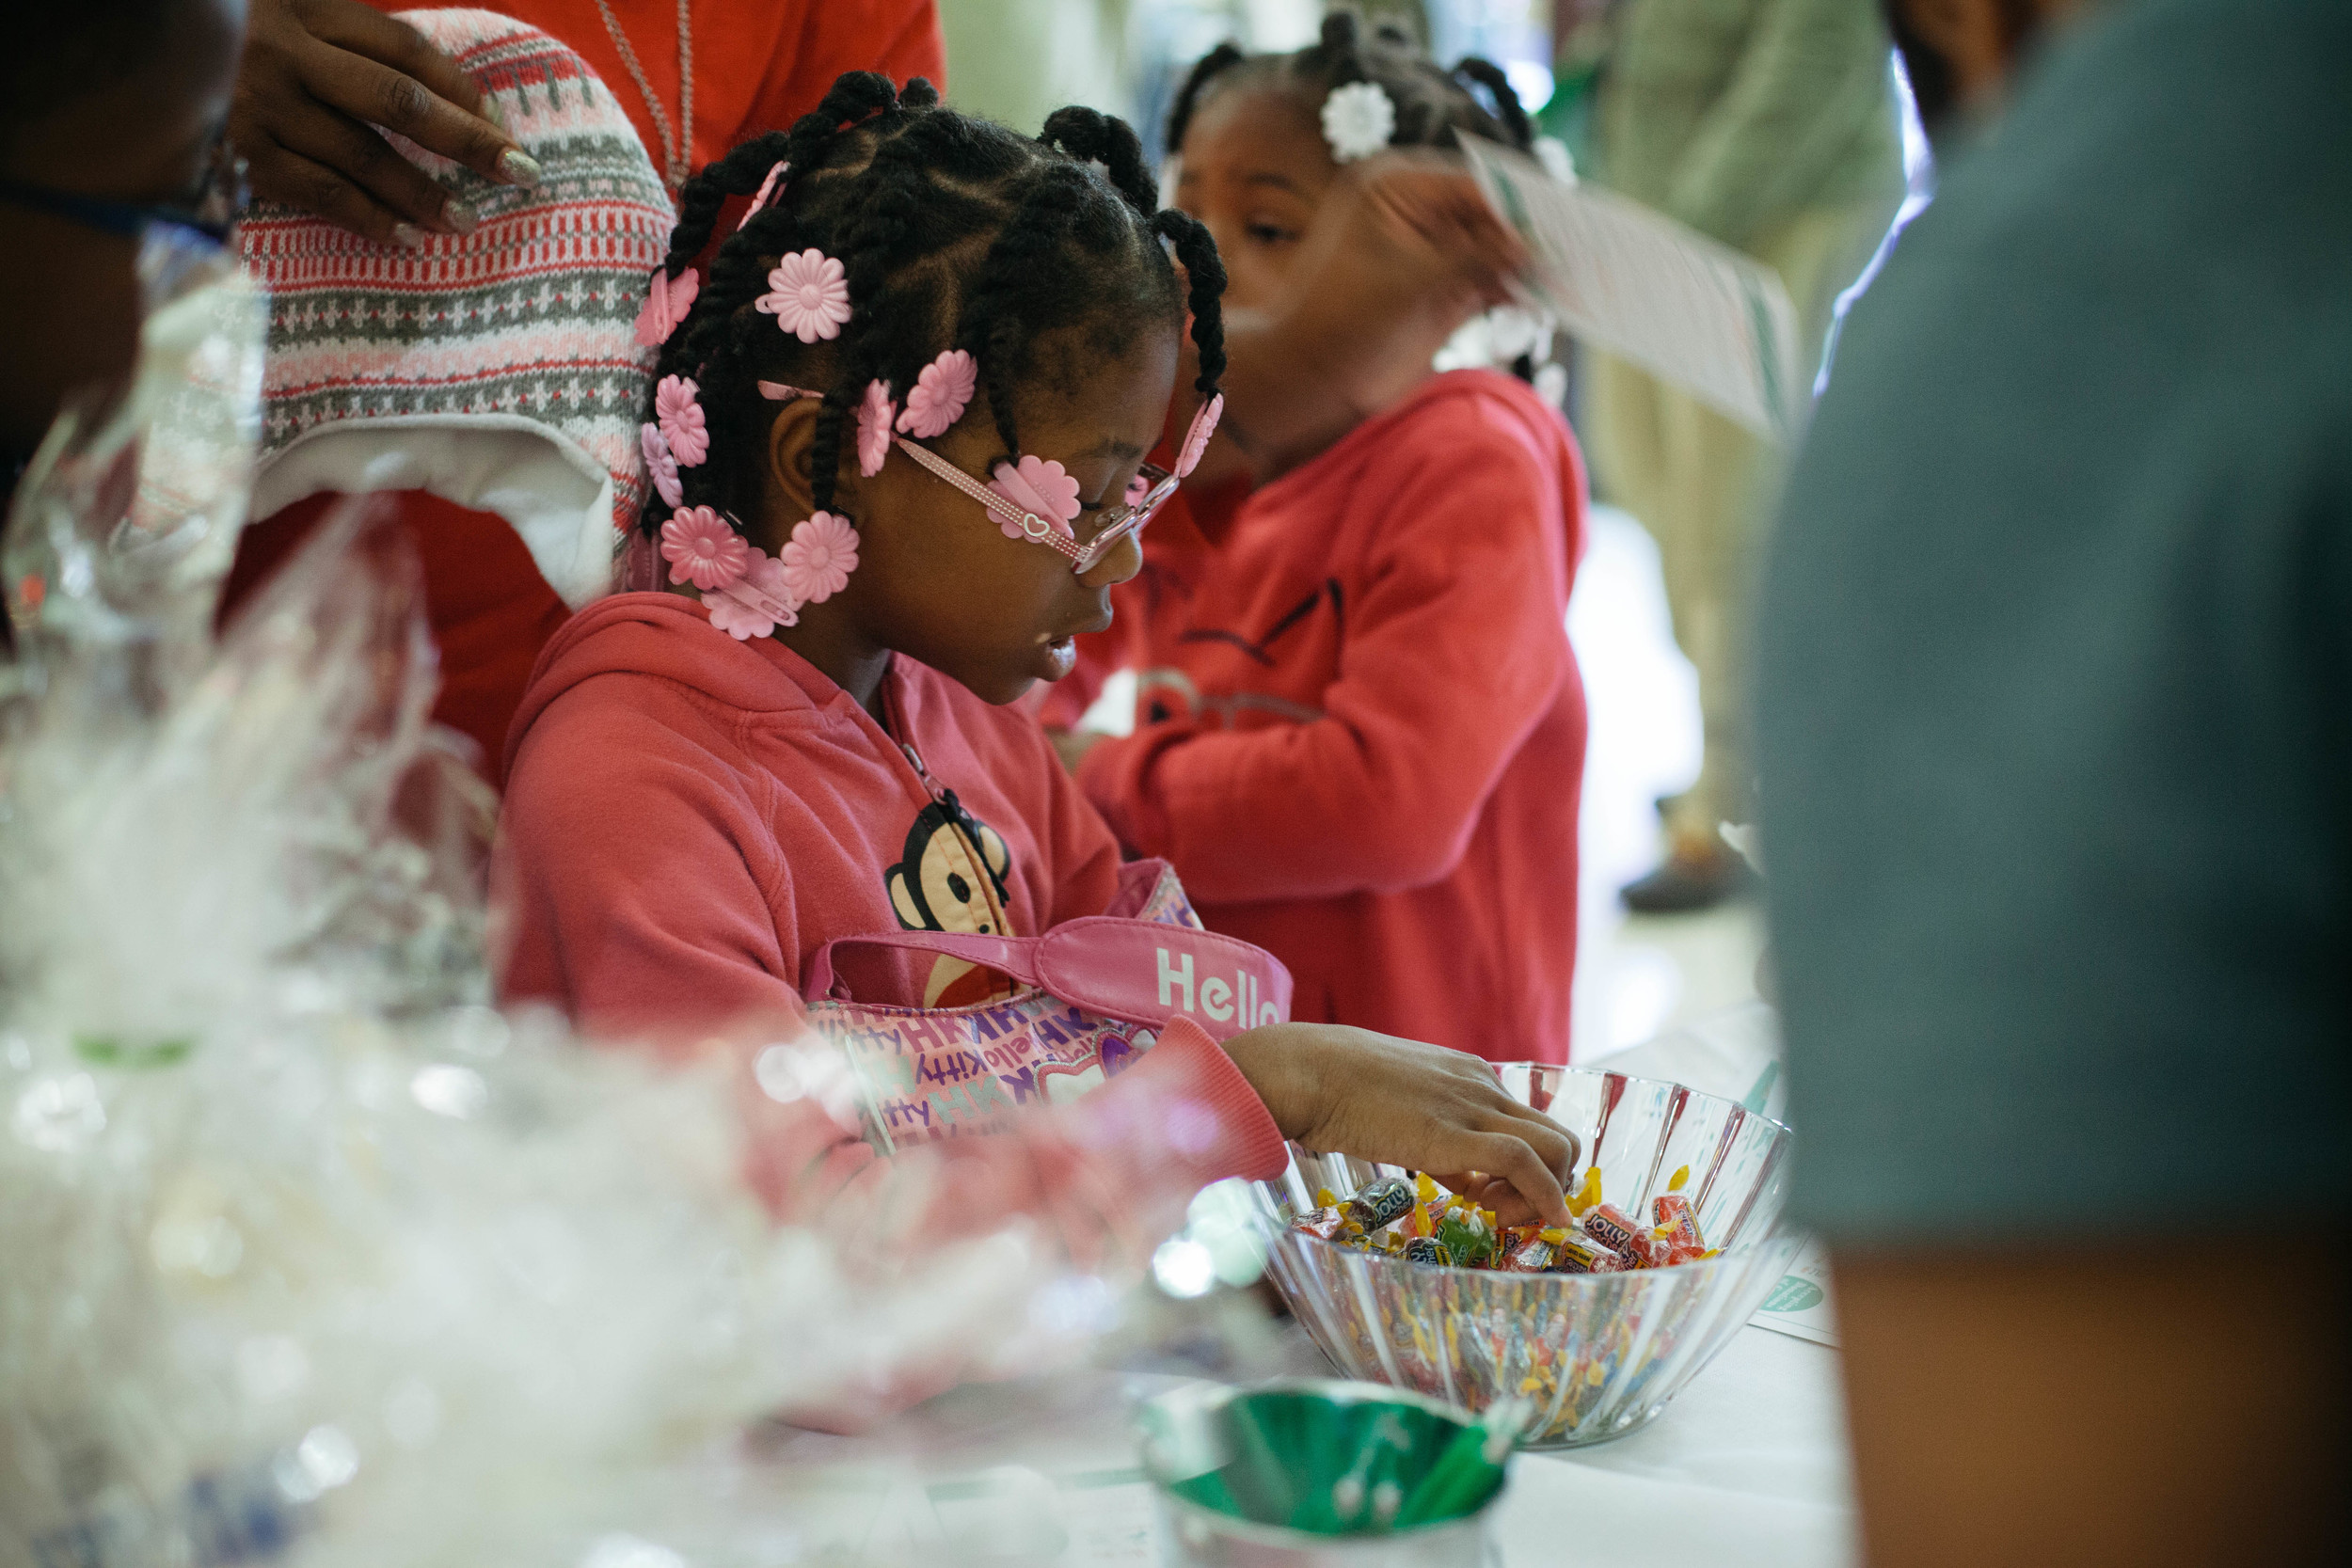 Girl looks through candy bowl at Humble Treasures booth